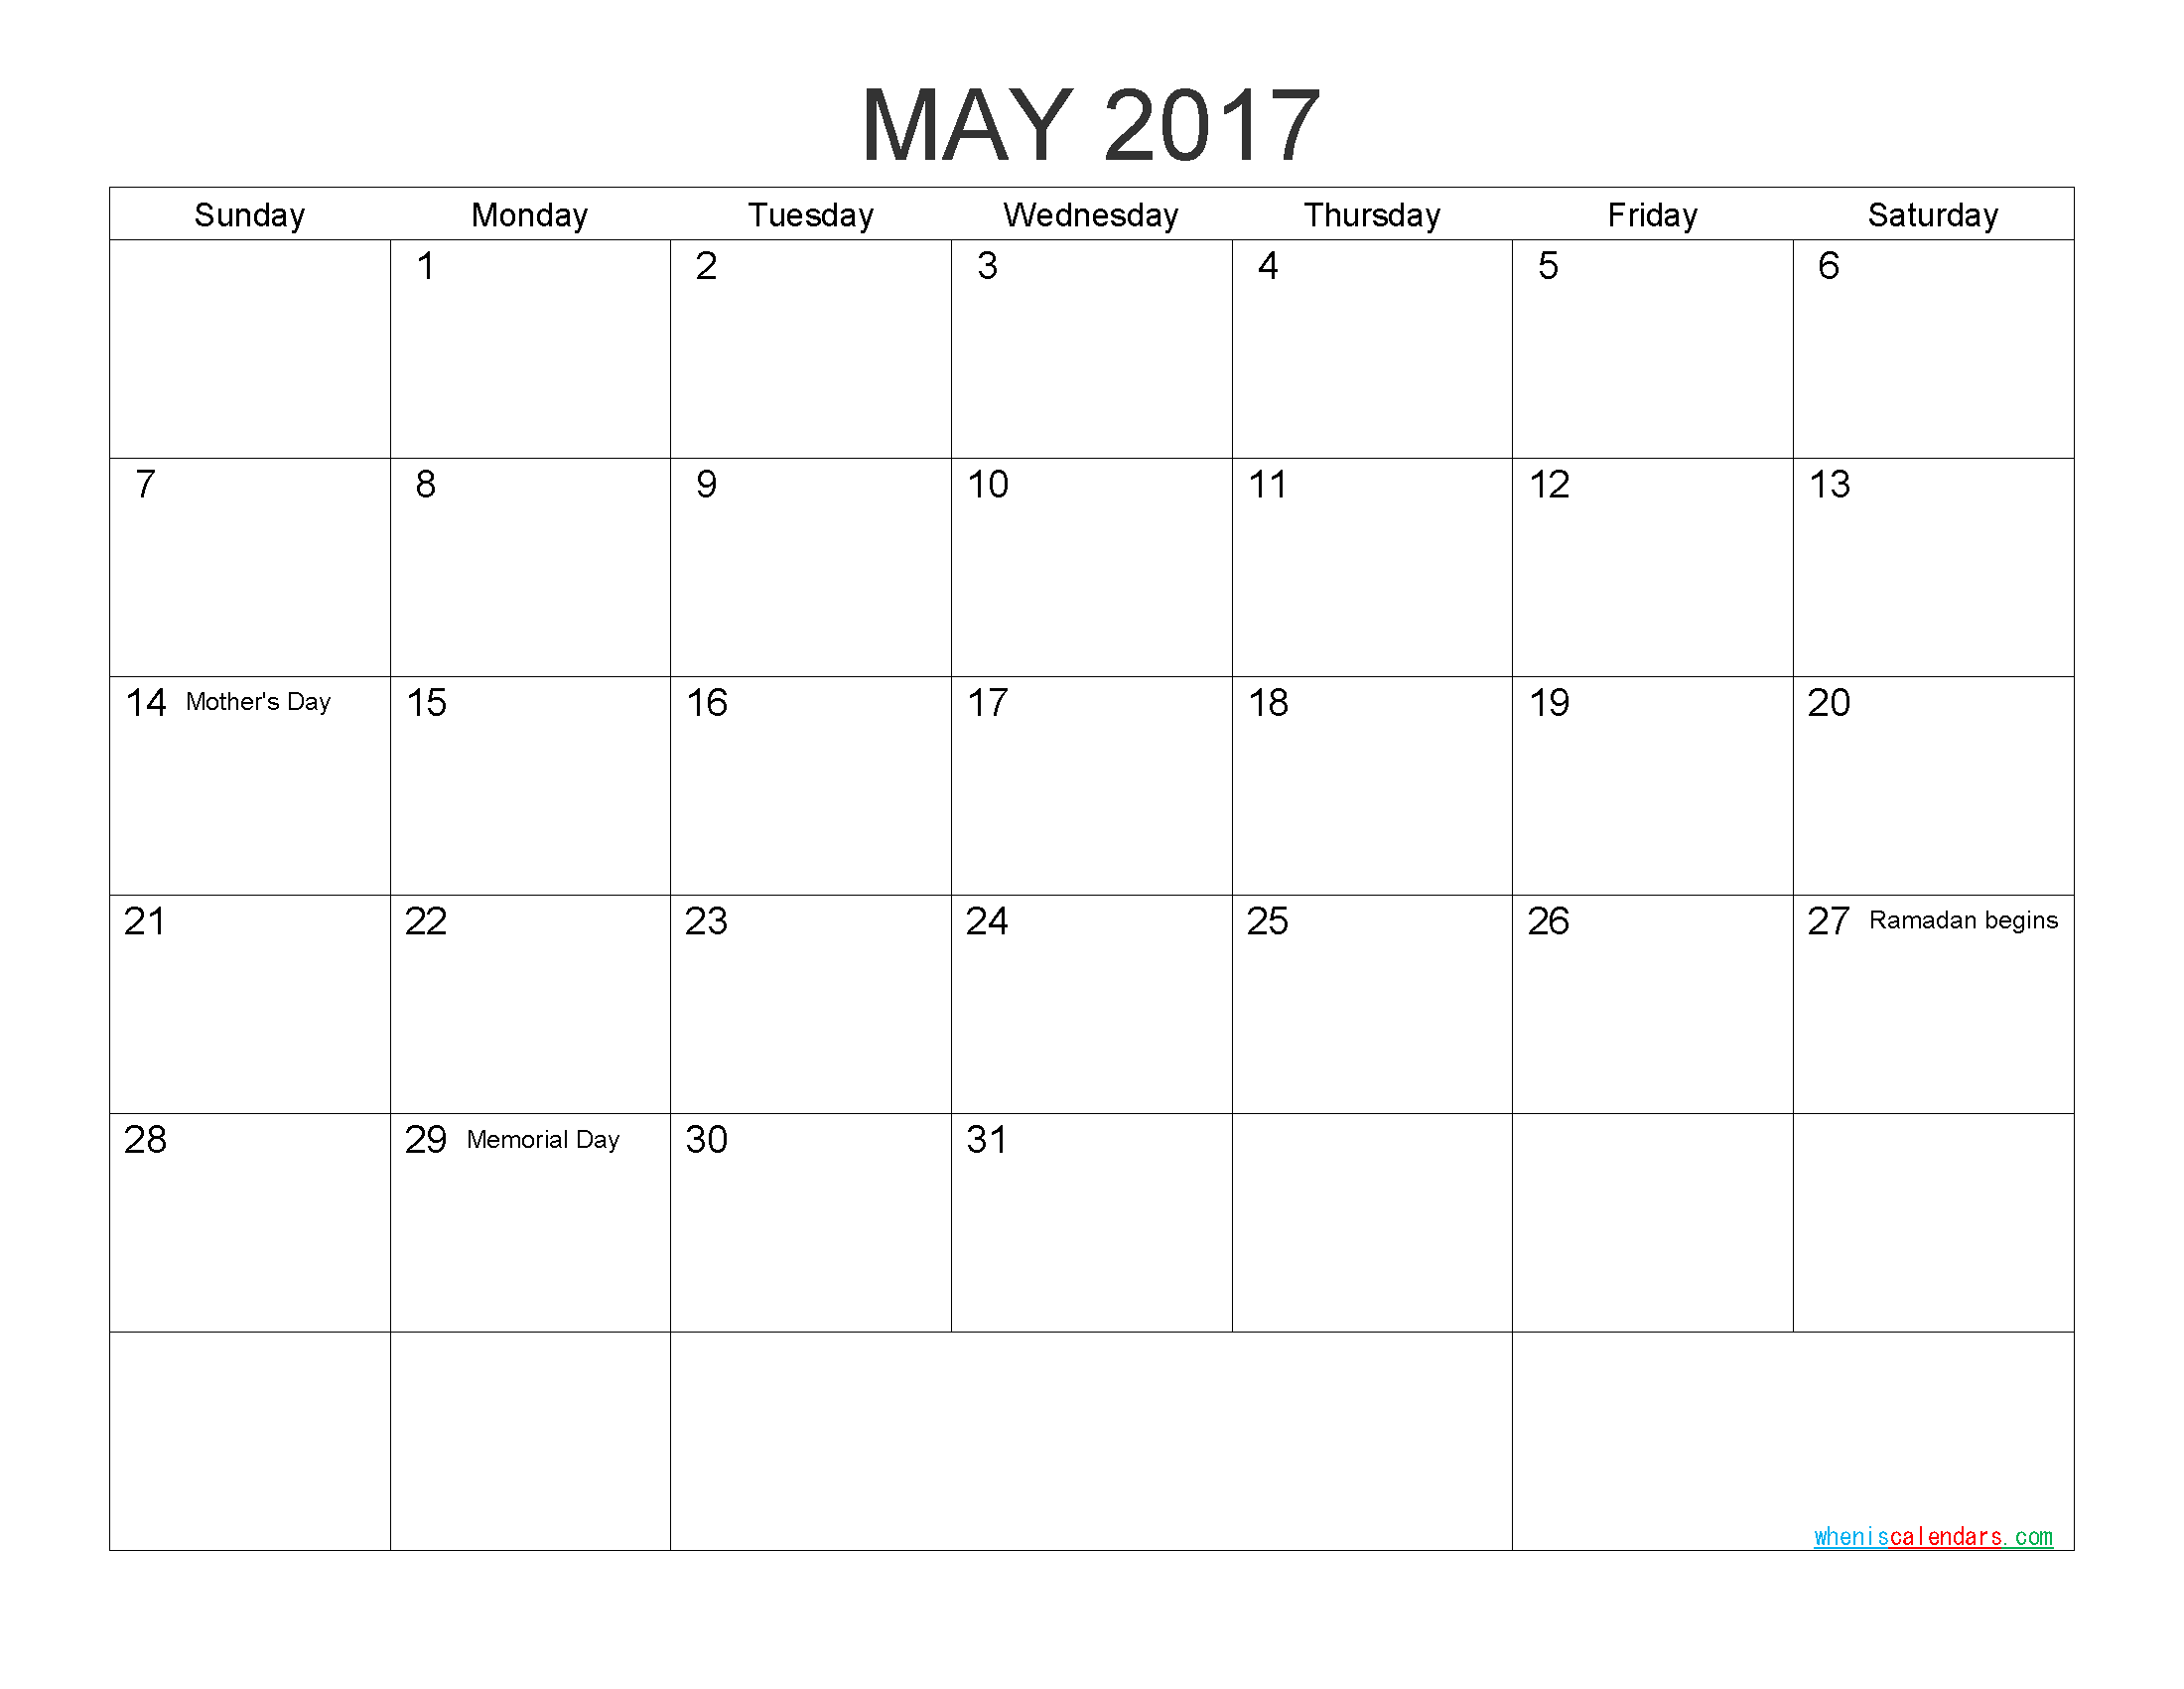 Download Free Calendar May 2017 Printable Calendar with Holidays as PDF and Image